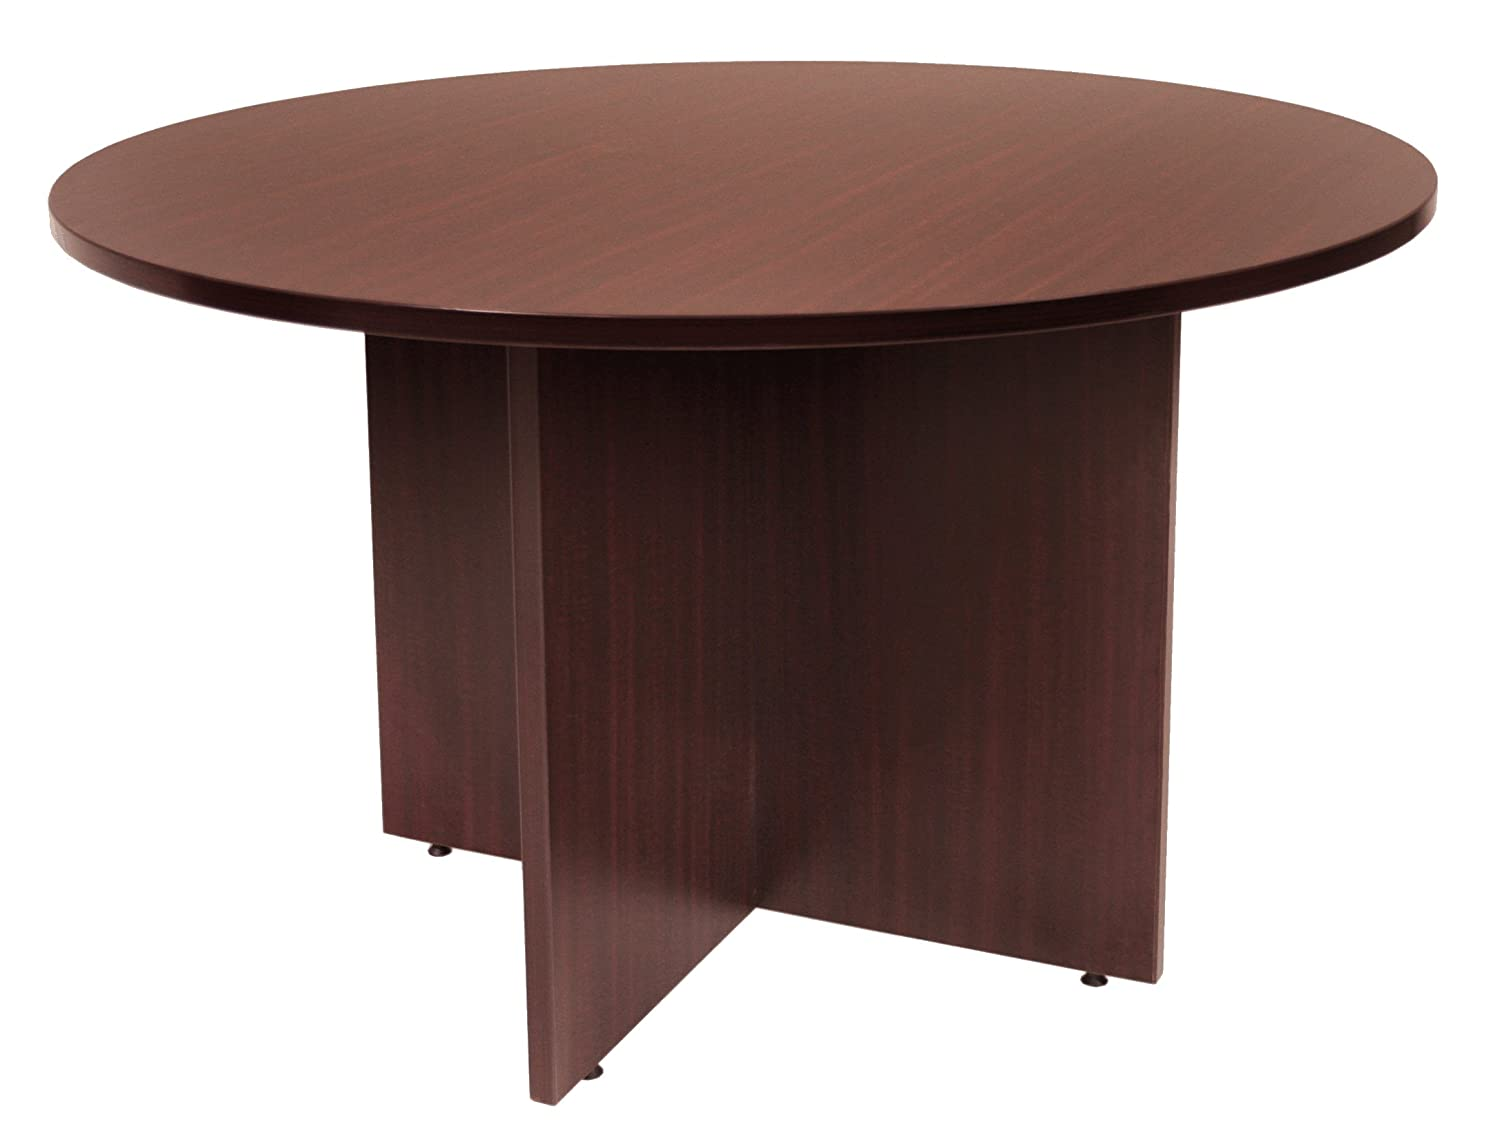 High Quality Amazon.com: Regency Legacy 42 Inch Round Conference Table  Mahogany:  Kitchen U0026 Dining